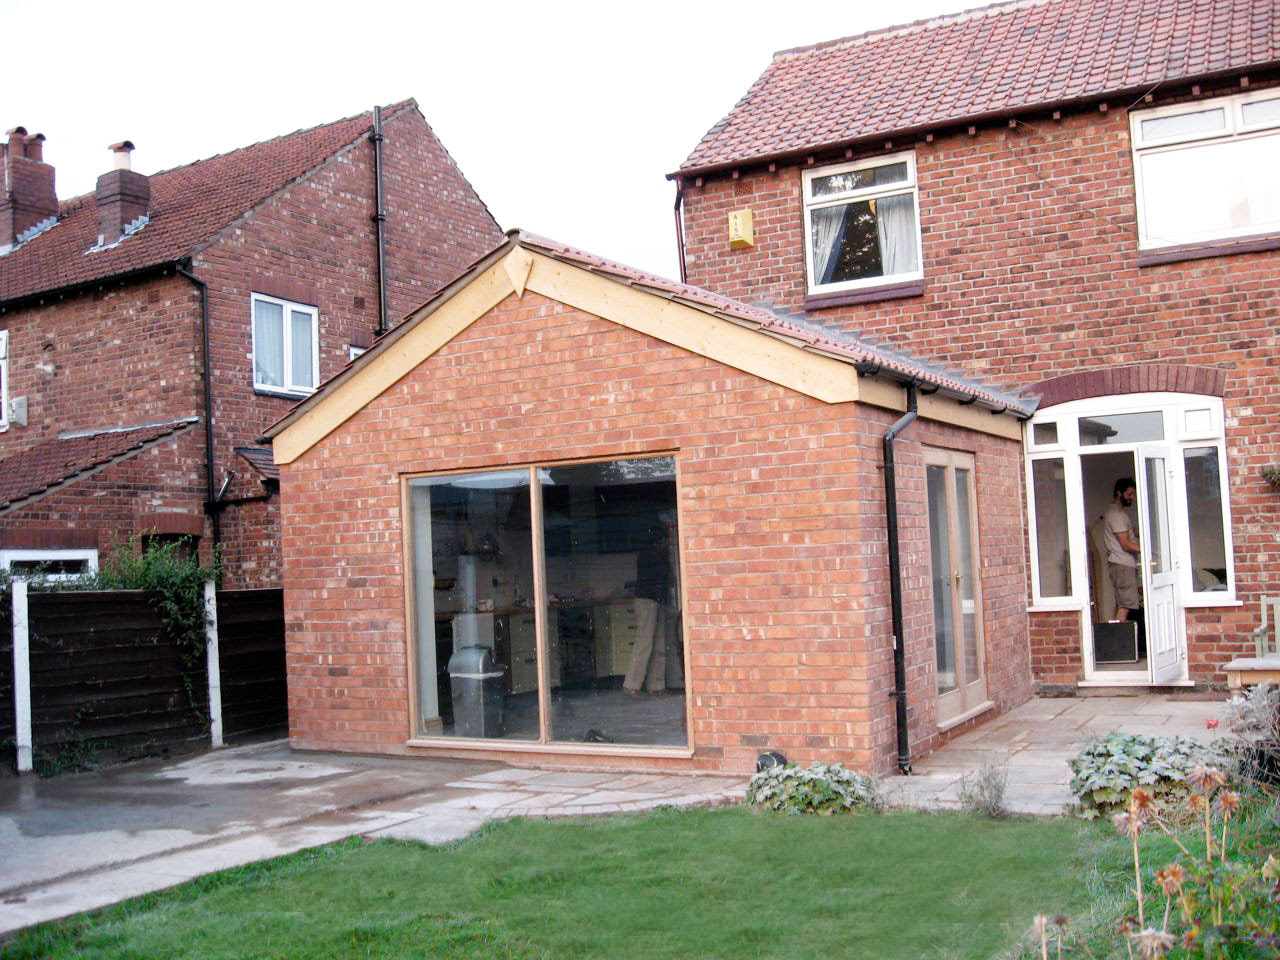 Ideas For Your House Extension House Extension Ideas Inspiration